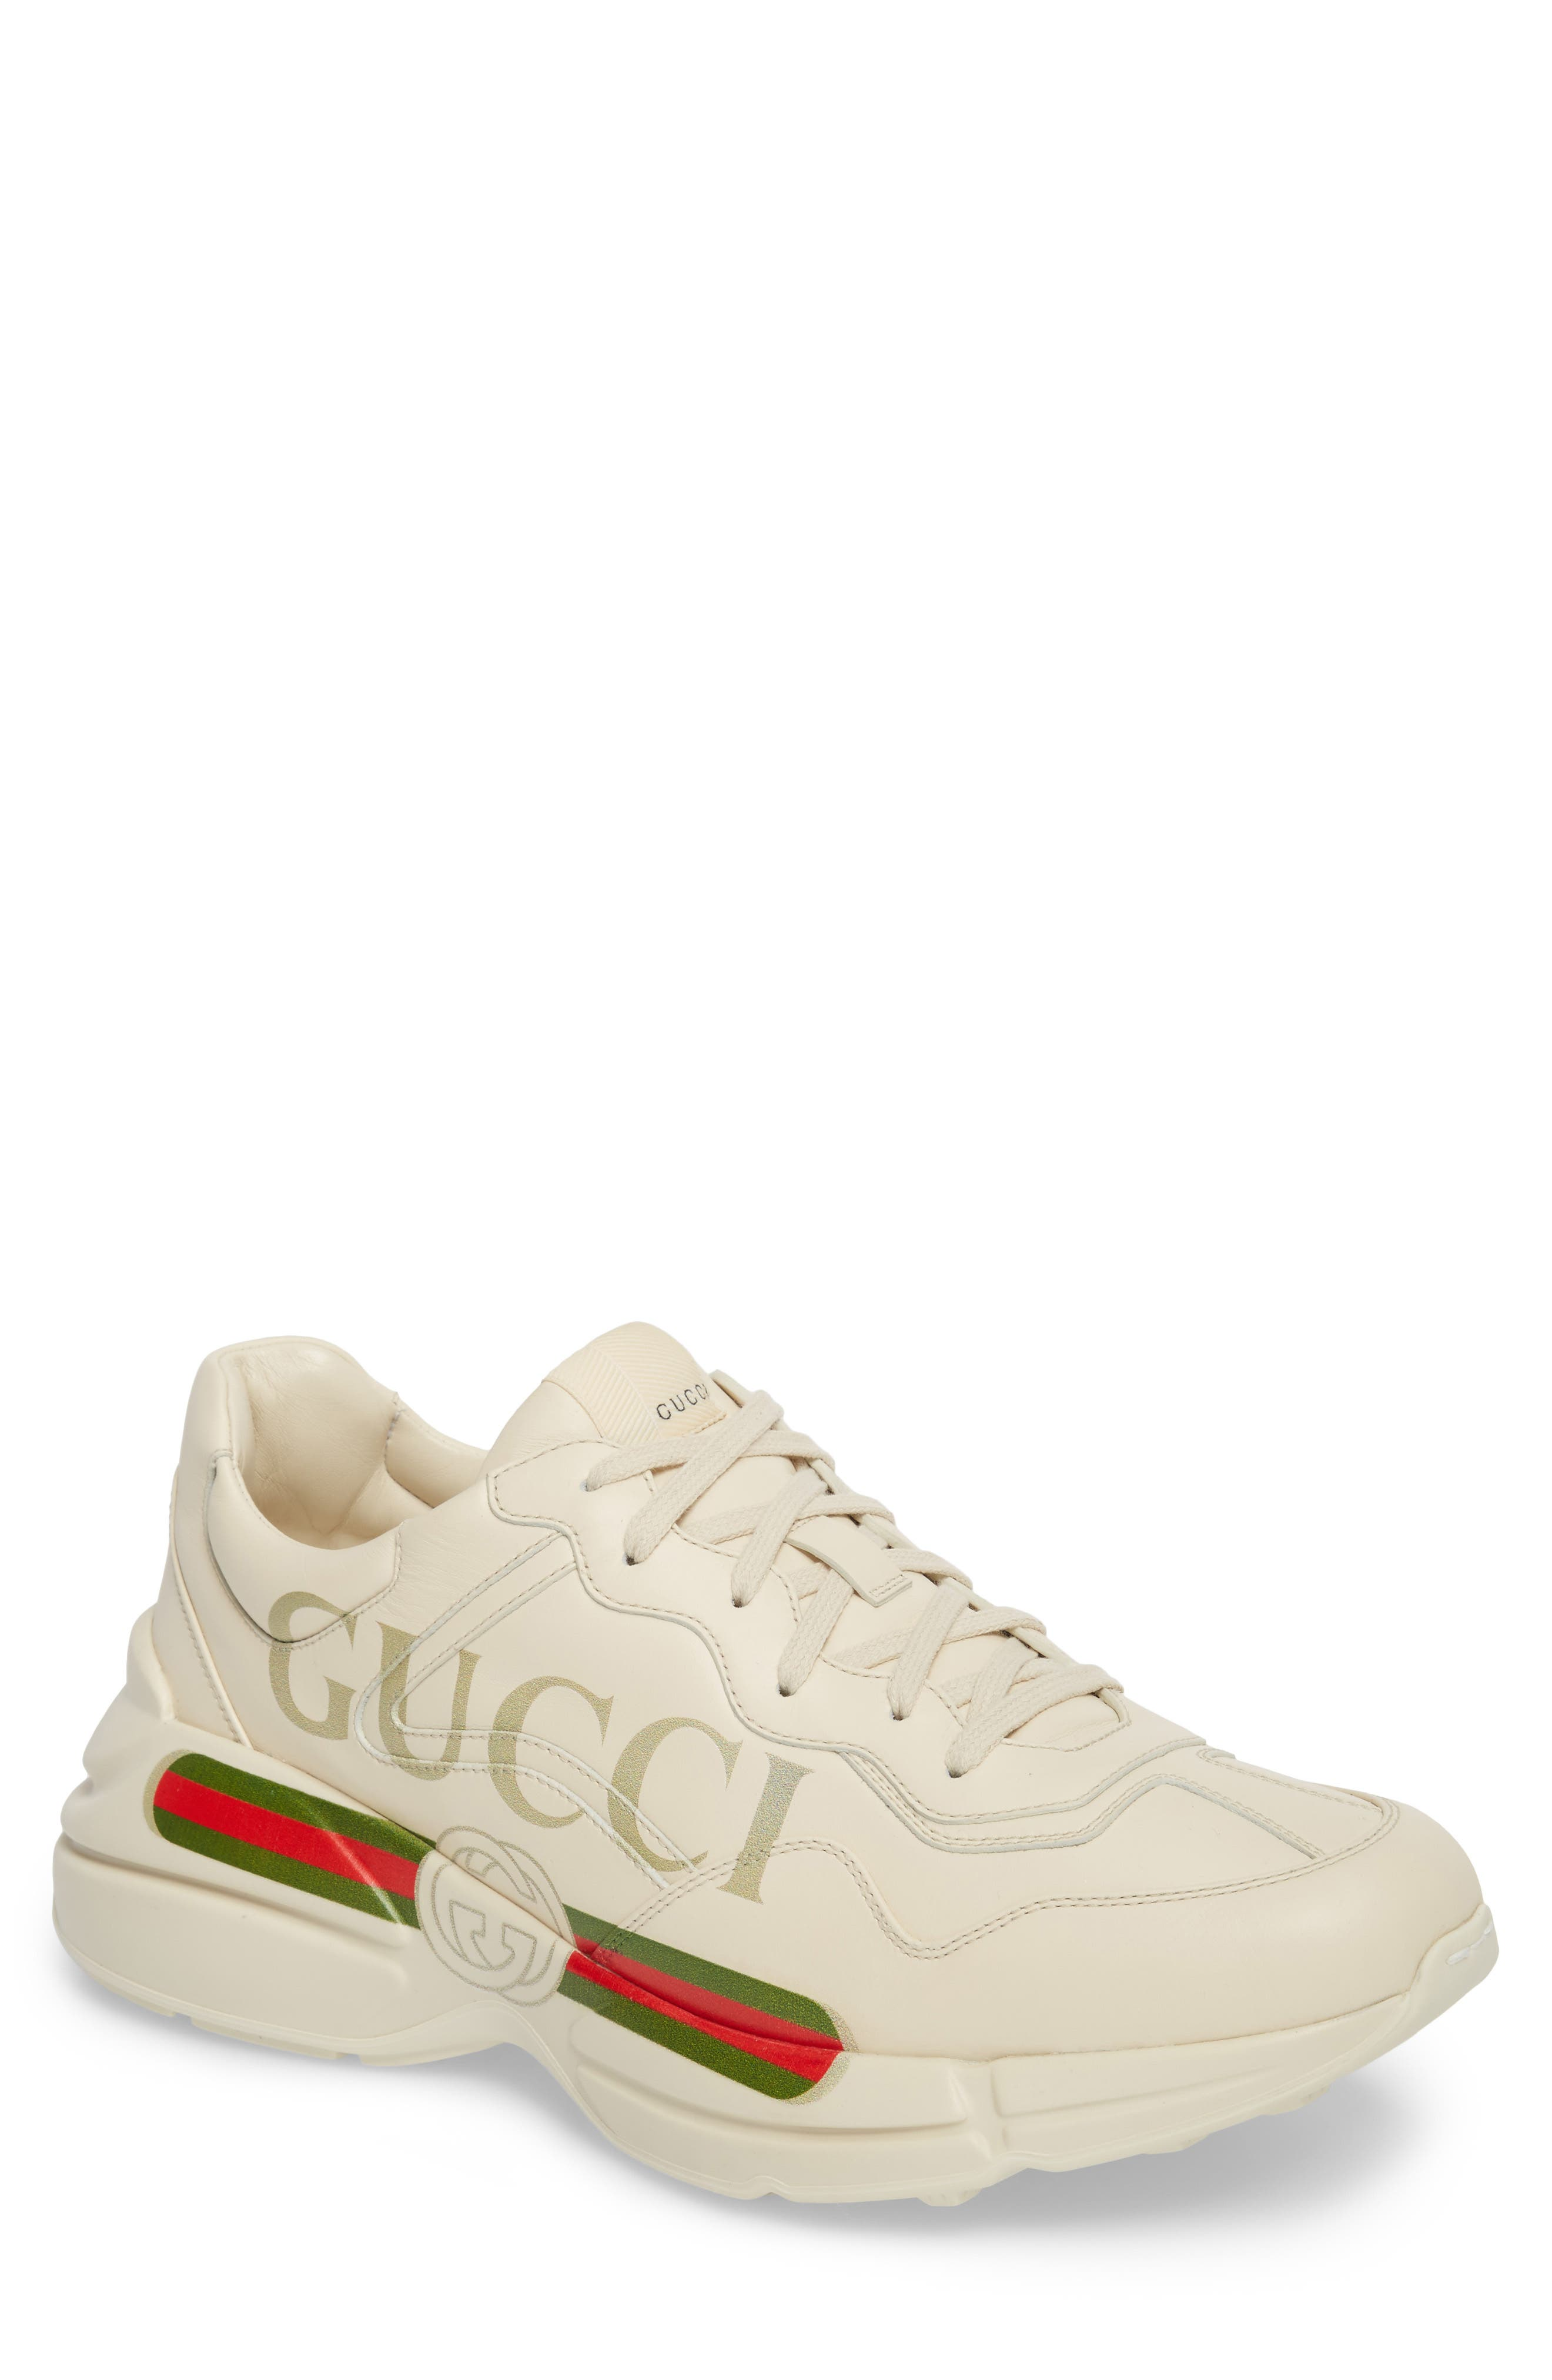 Alternate Image 1 Selected - Gucci Rhyton Sneaker (Men)